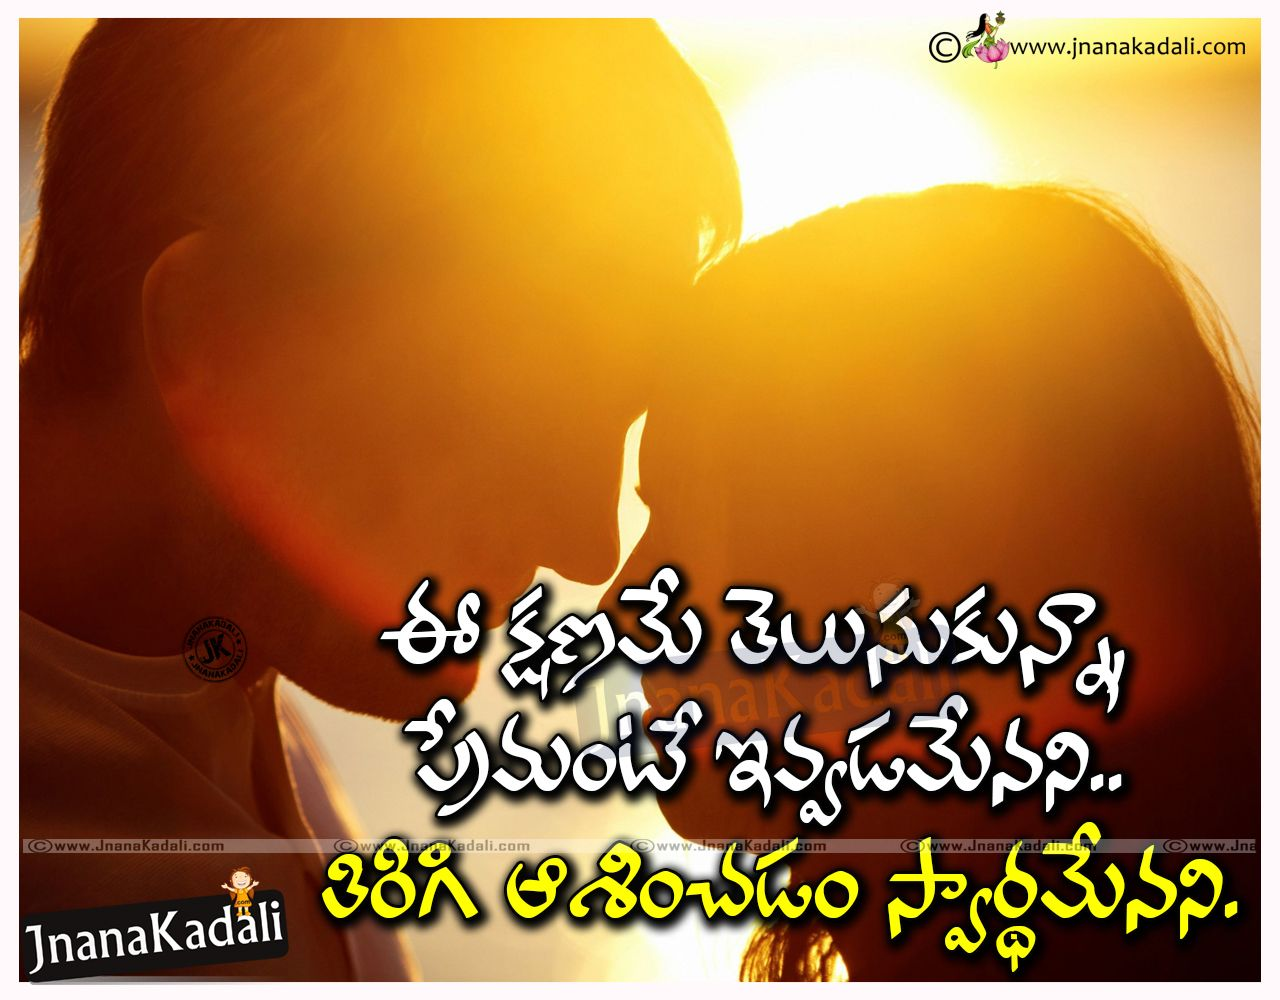 Romantic Heart Touching Love Quotes In With Hd Wallpapers